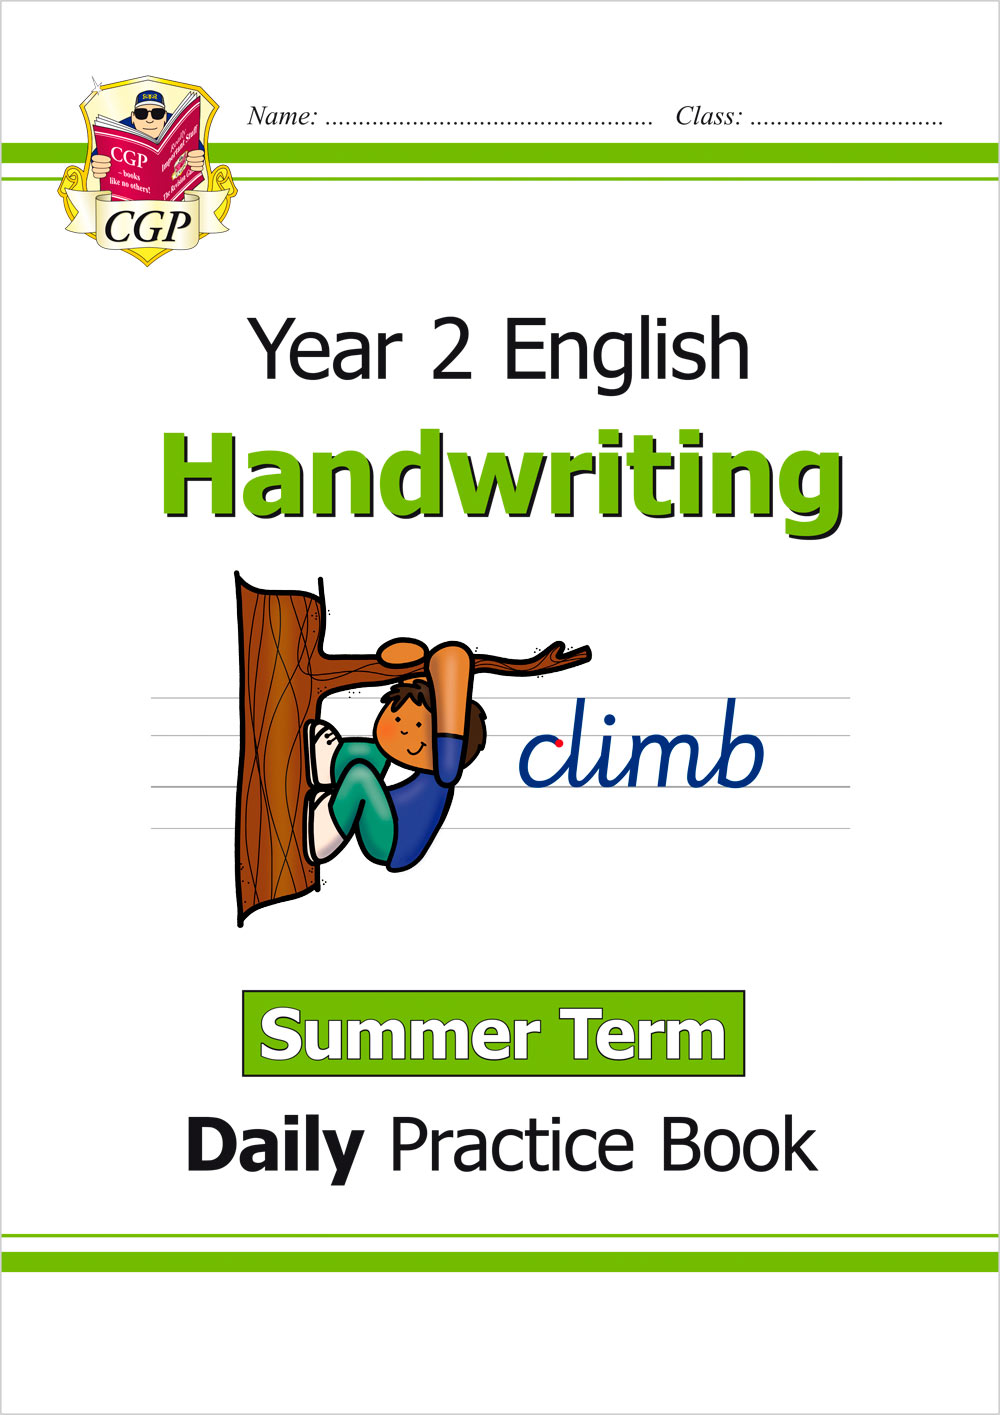 E2HWSU11 - New KS1 Handwriting Daily Practice Book: Year 2 - Summer Term